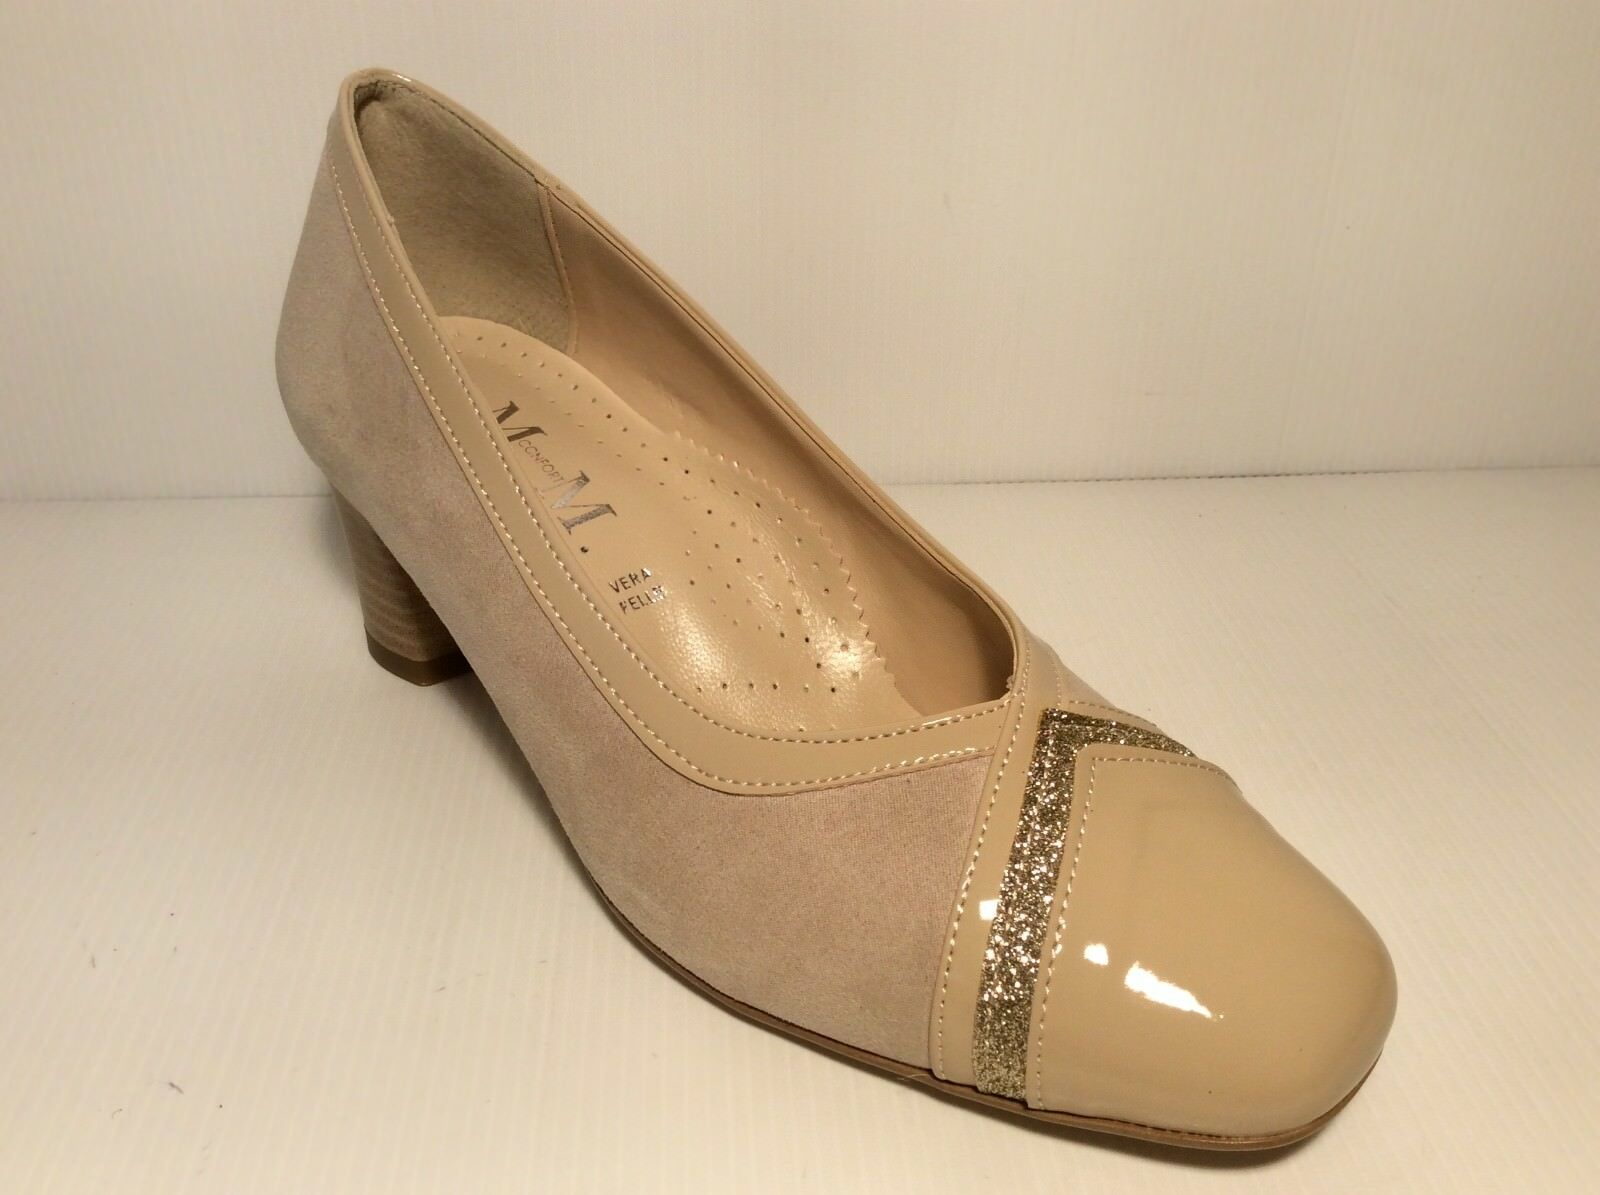 CHAUSSURES ESCARPINS FEMME MM CONFORT 506 COL BEIGE MADE IN ITALY TALON 50